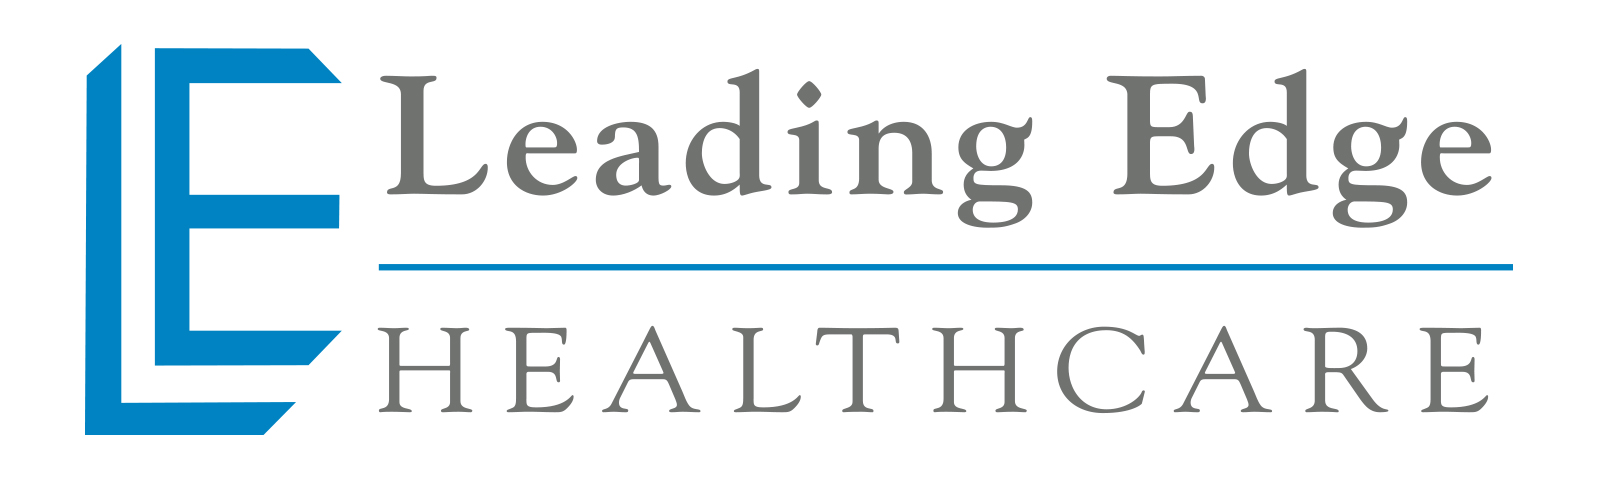 Leading Edge Healthcare